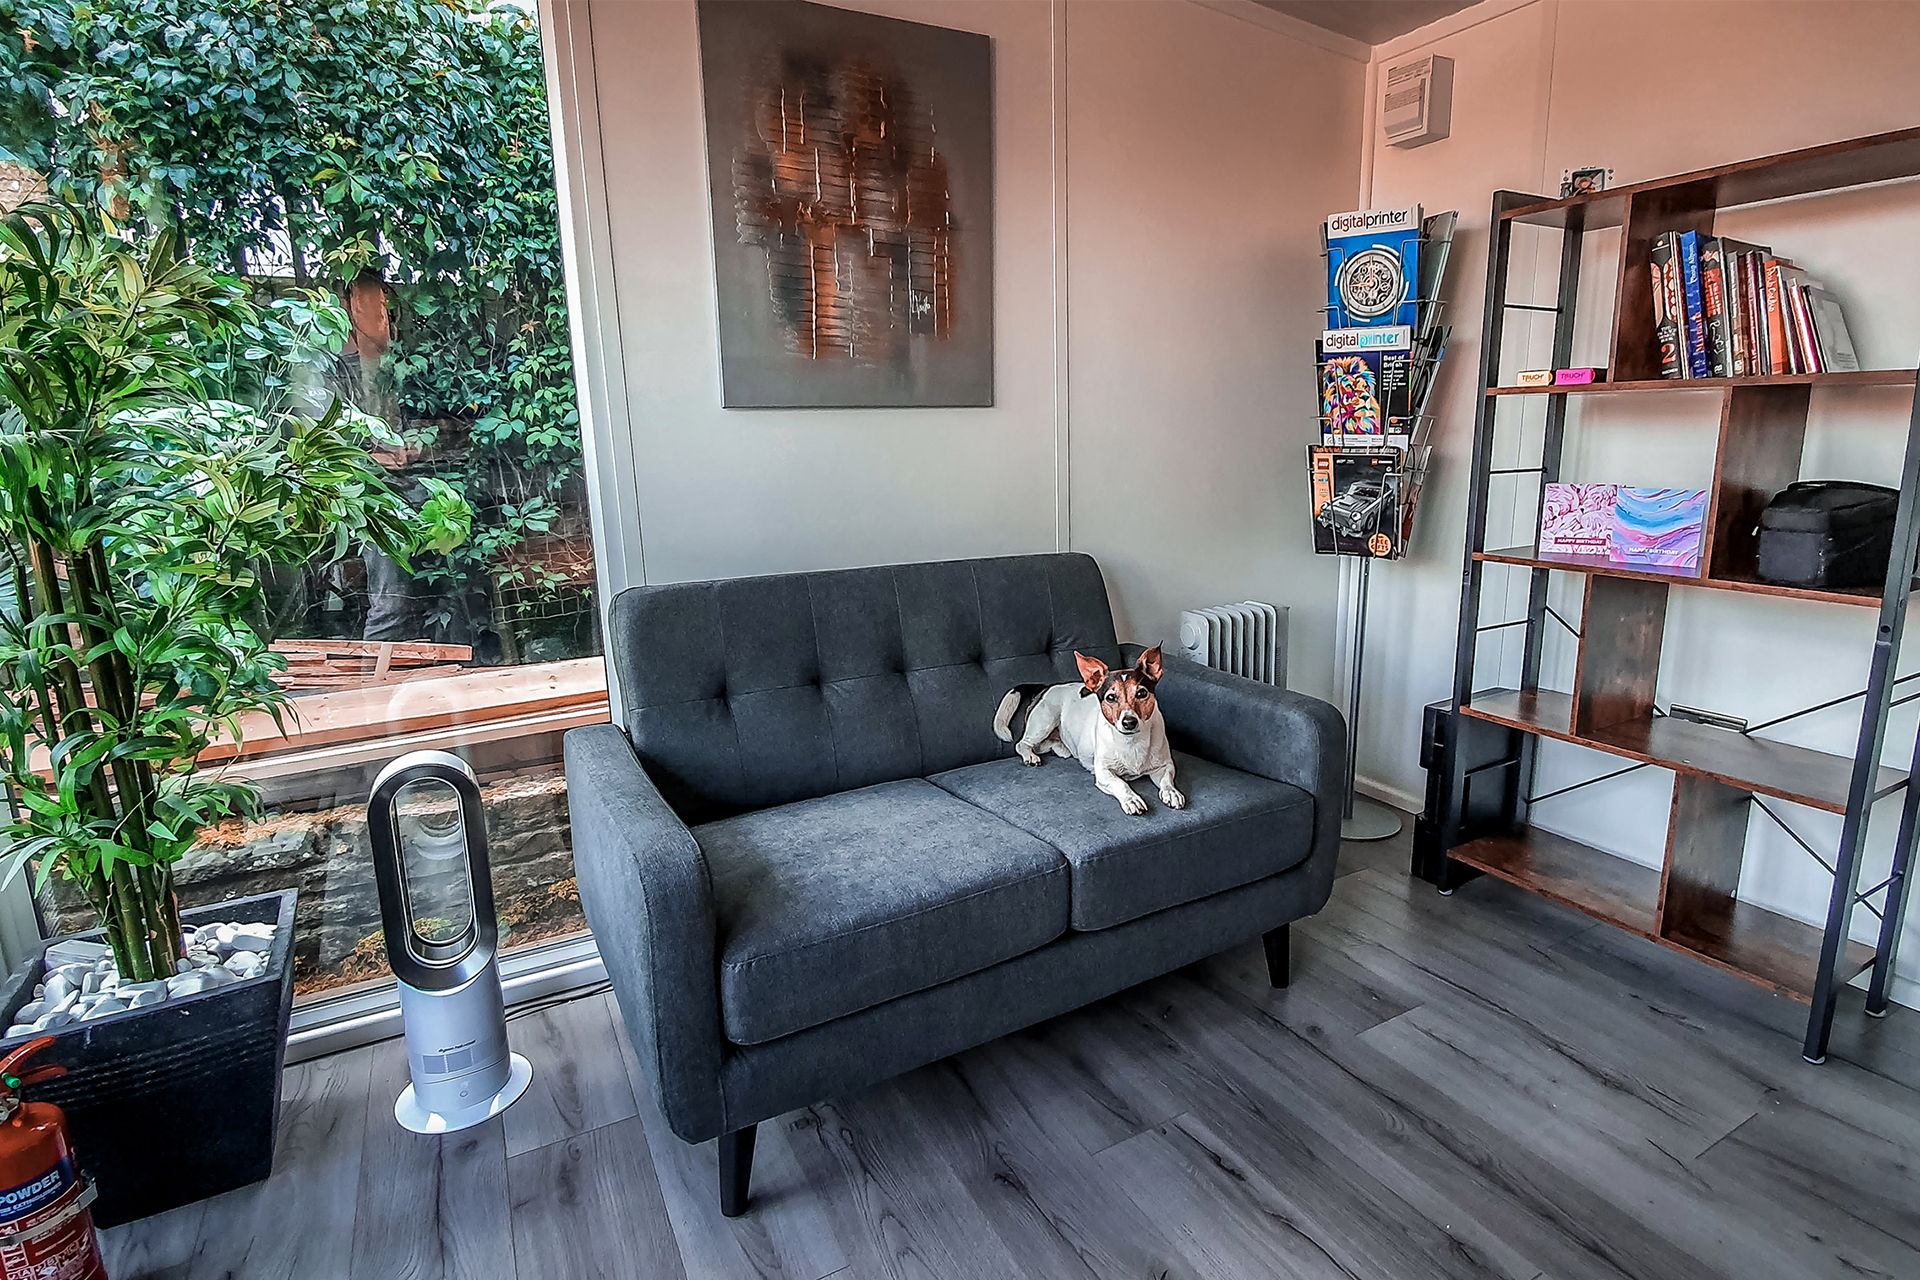 Interior of home garden office with a grey sofa and a jack russell